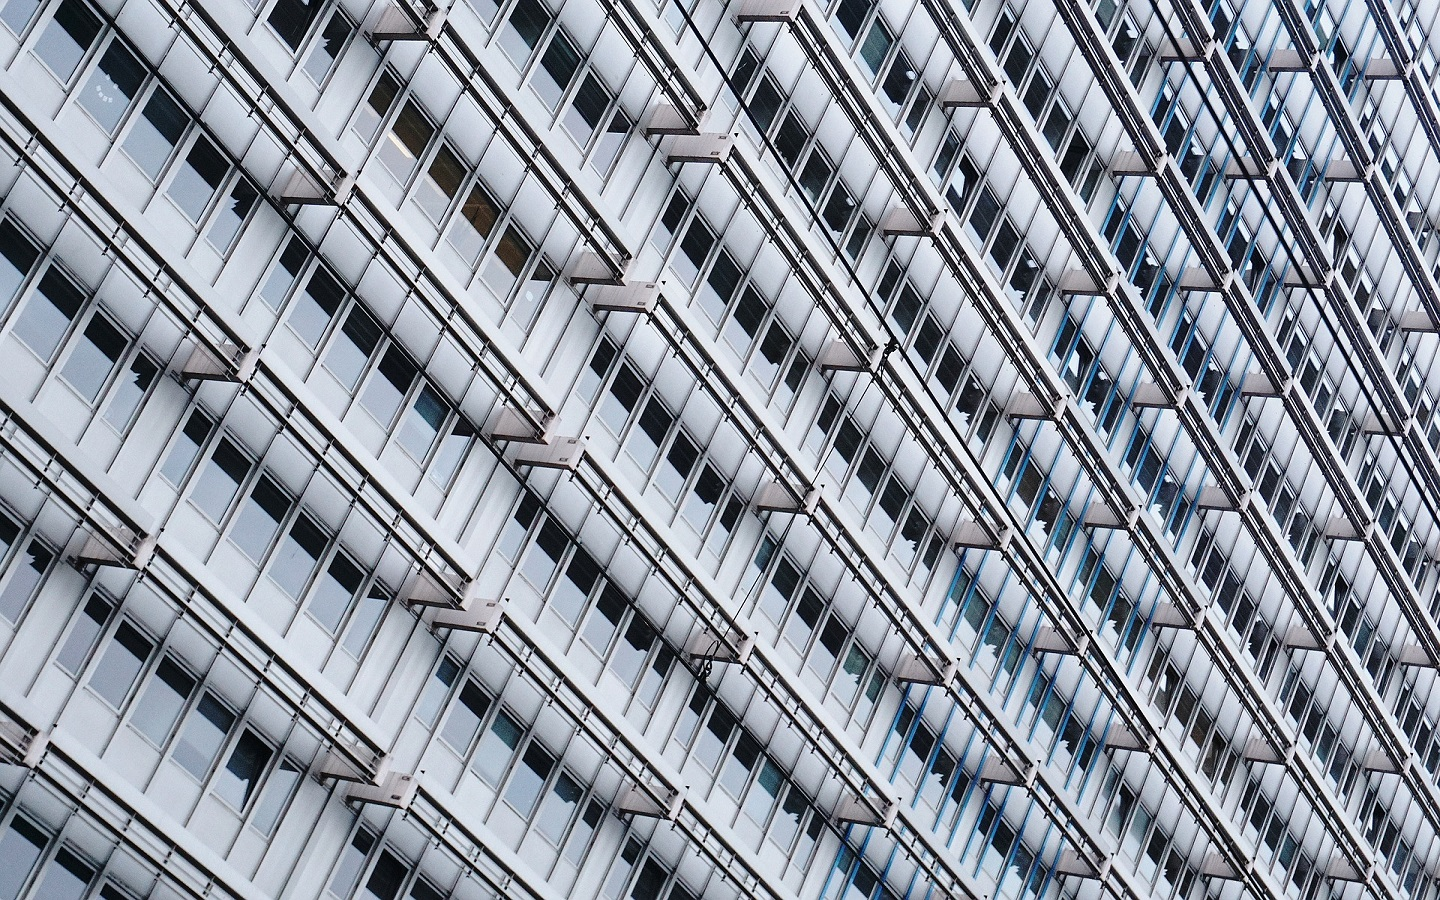 a building with aluminum window panes